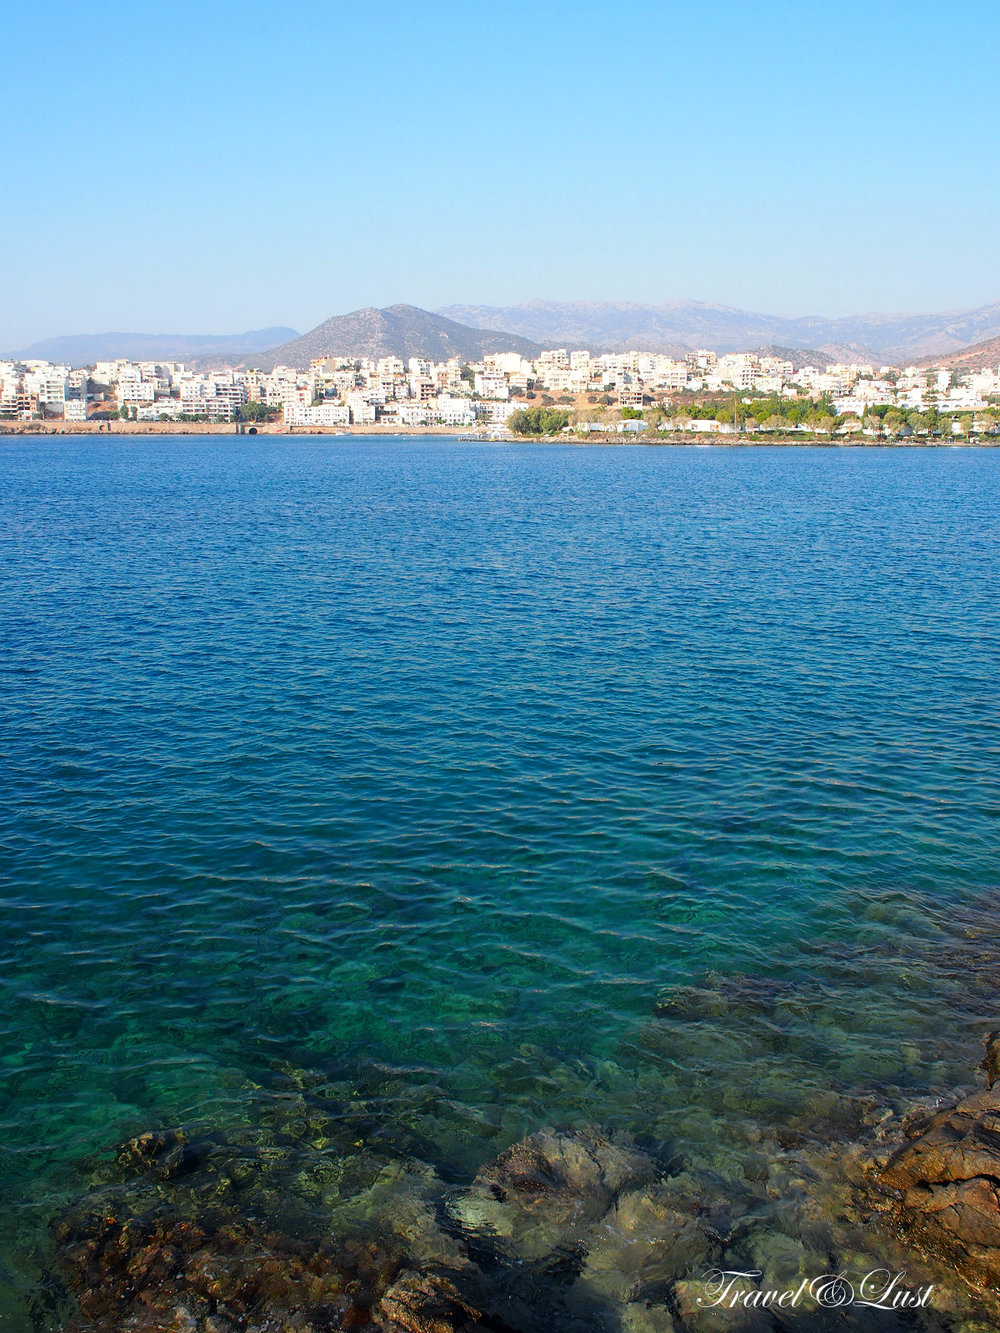 Walk around the area of Sensimar Minos Palace to find secluded spots all to yourself!